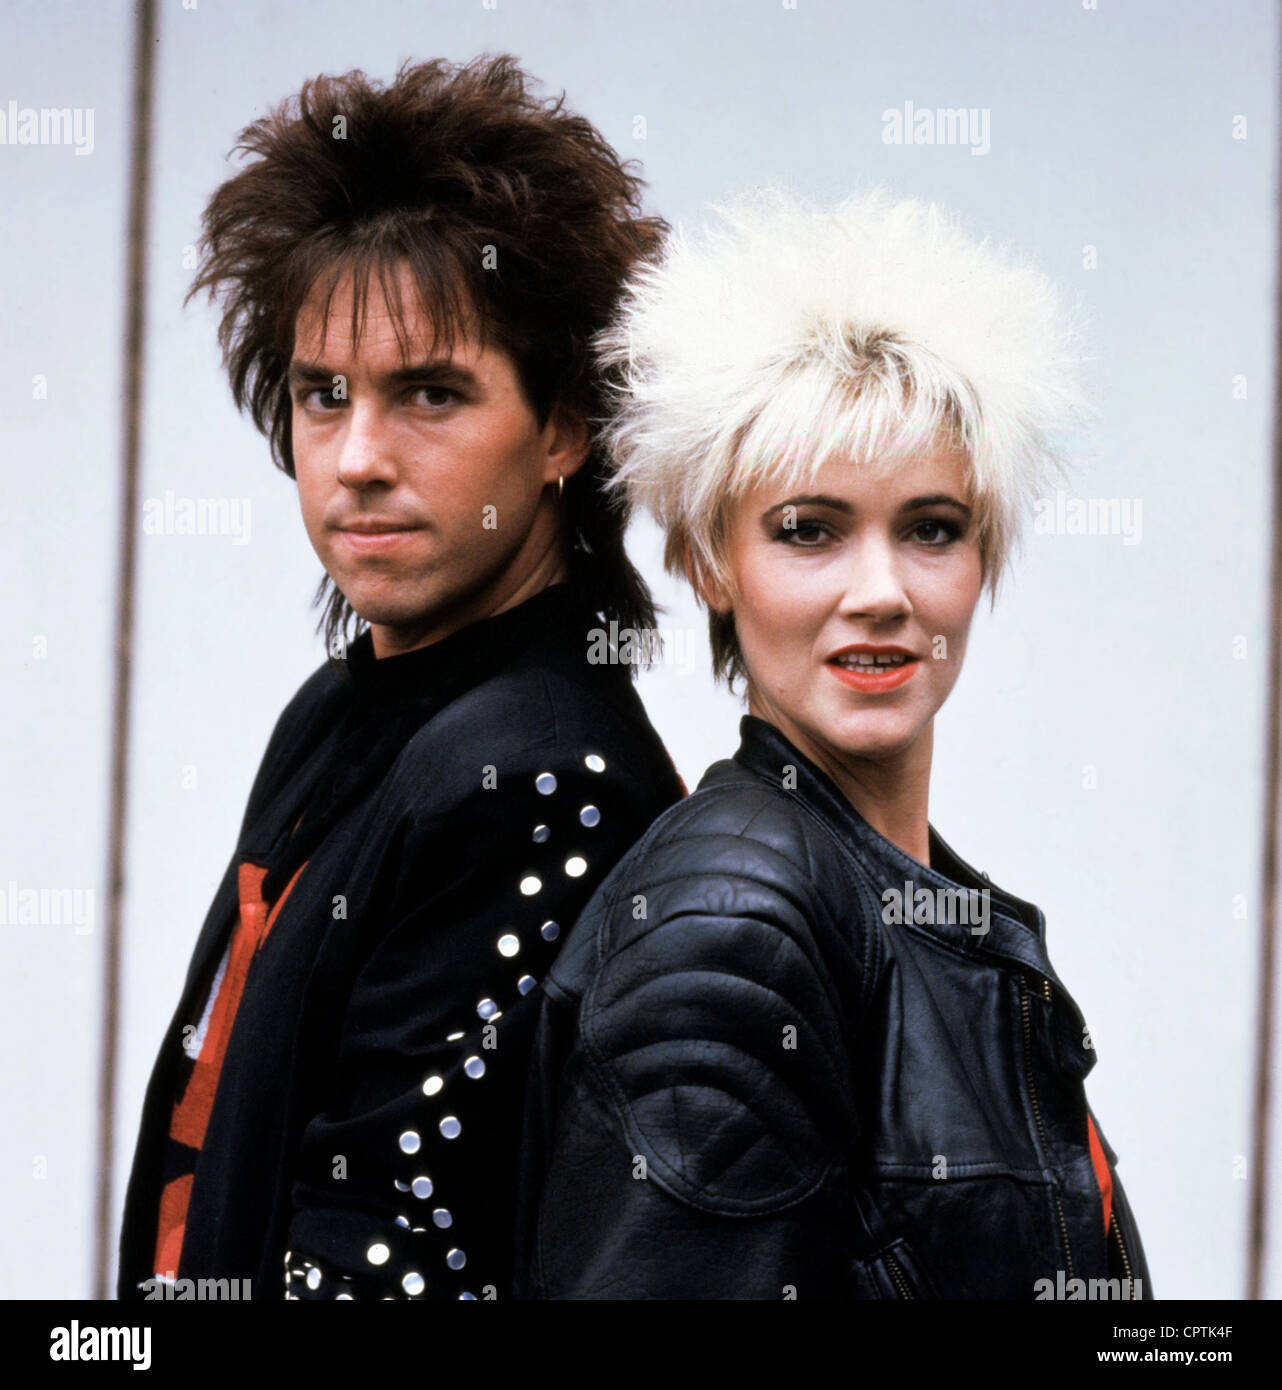 Roxette, Swedish pop band, founded in 1986, Per Gessle, Marie Fredriksson, portrait, September 1989, Additional - Stock Image